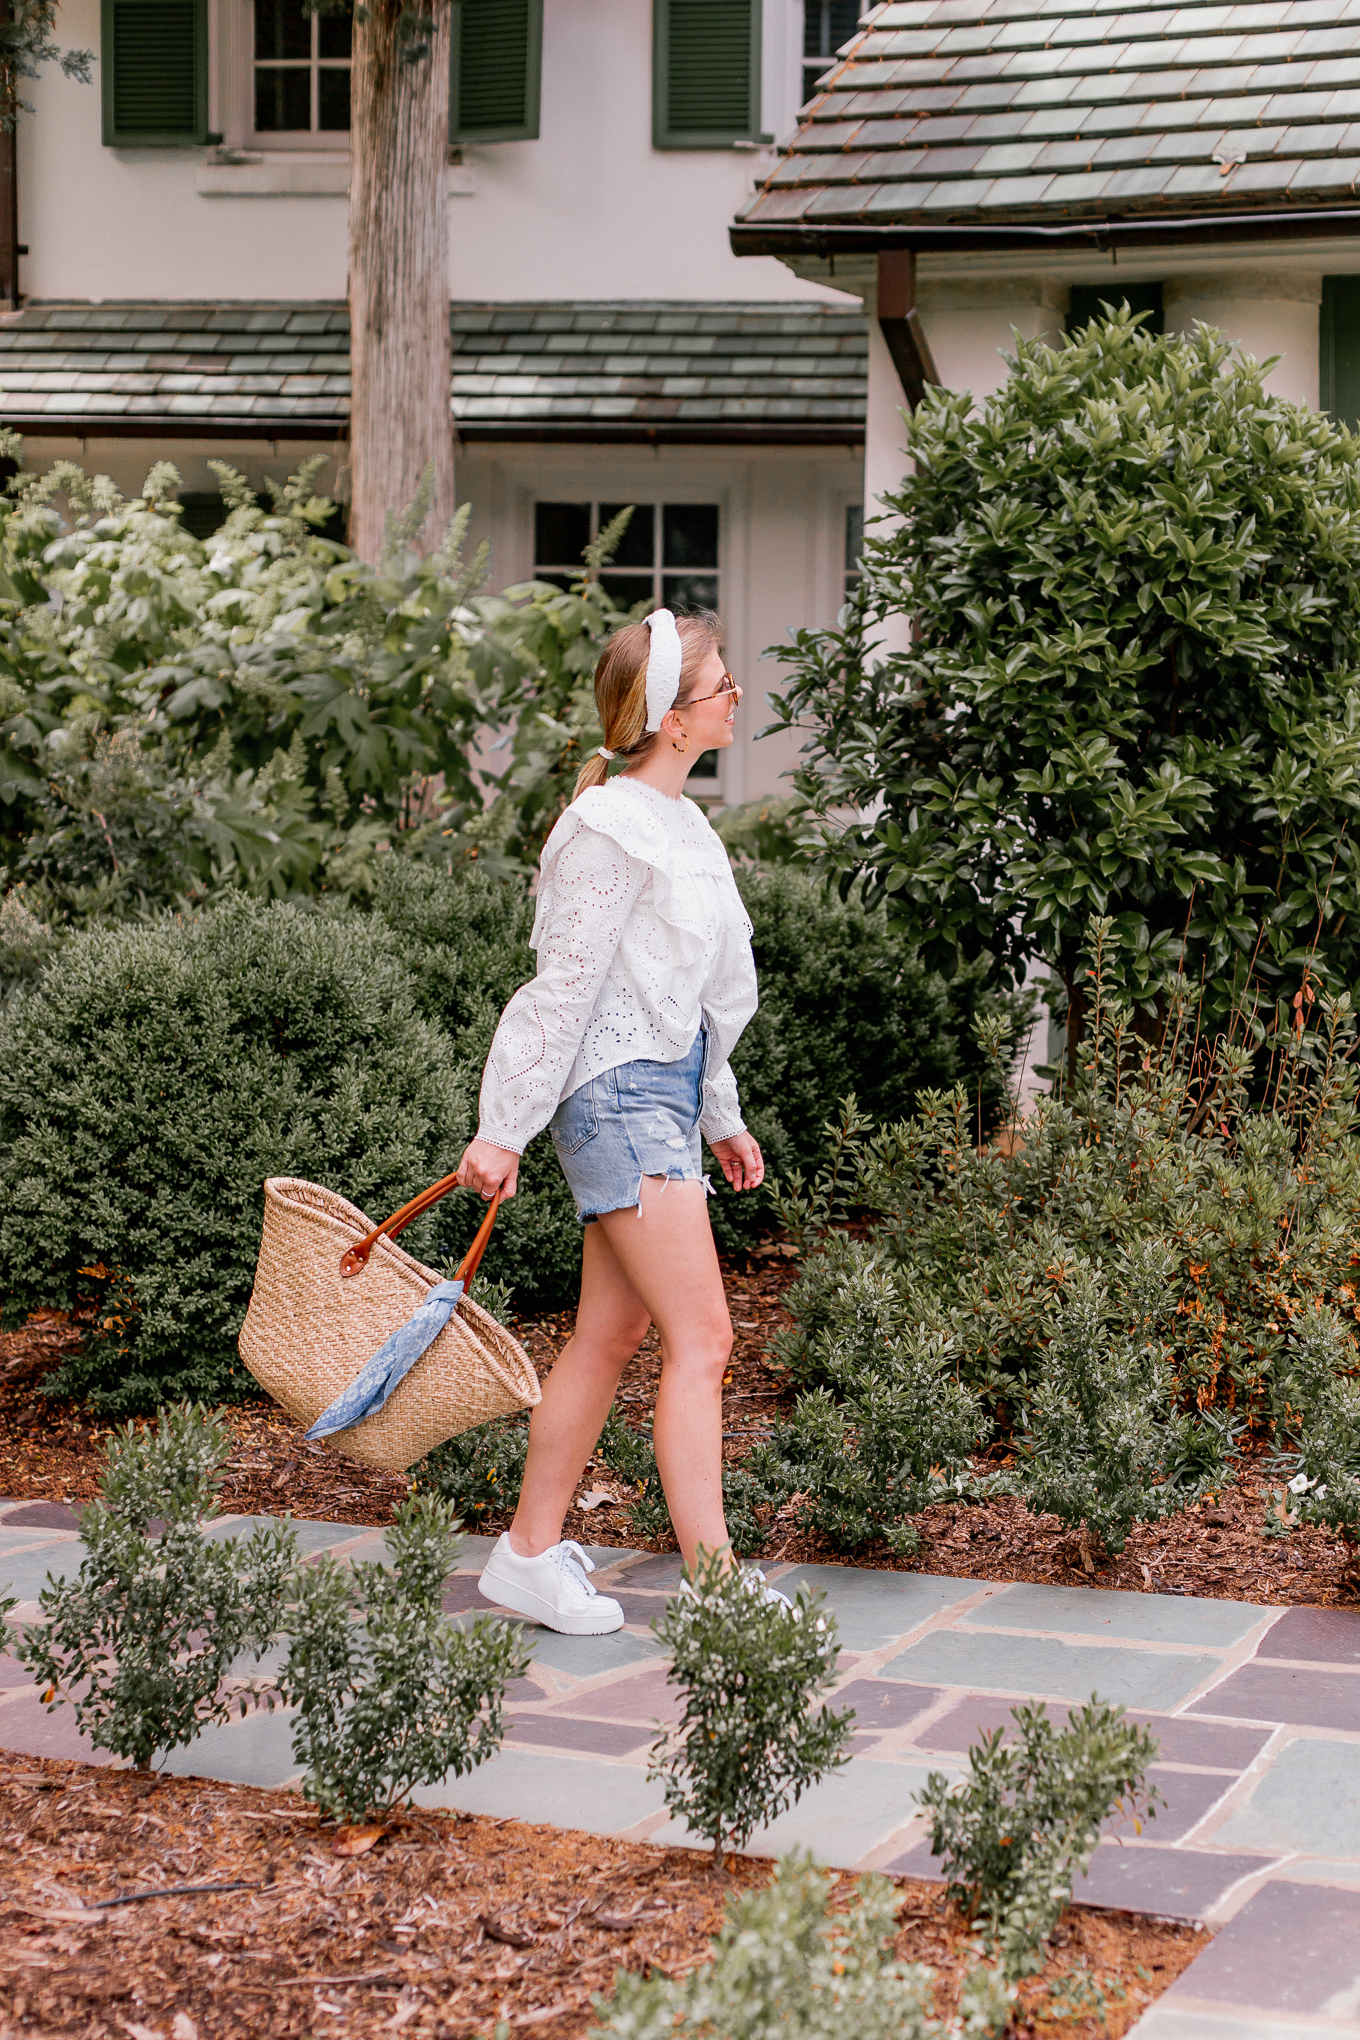 Recent Looks May 2020 | Casual Summer Style - Eyelet Top, Denim Cutoff Shorts | Louella Reese